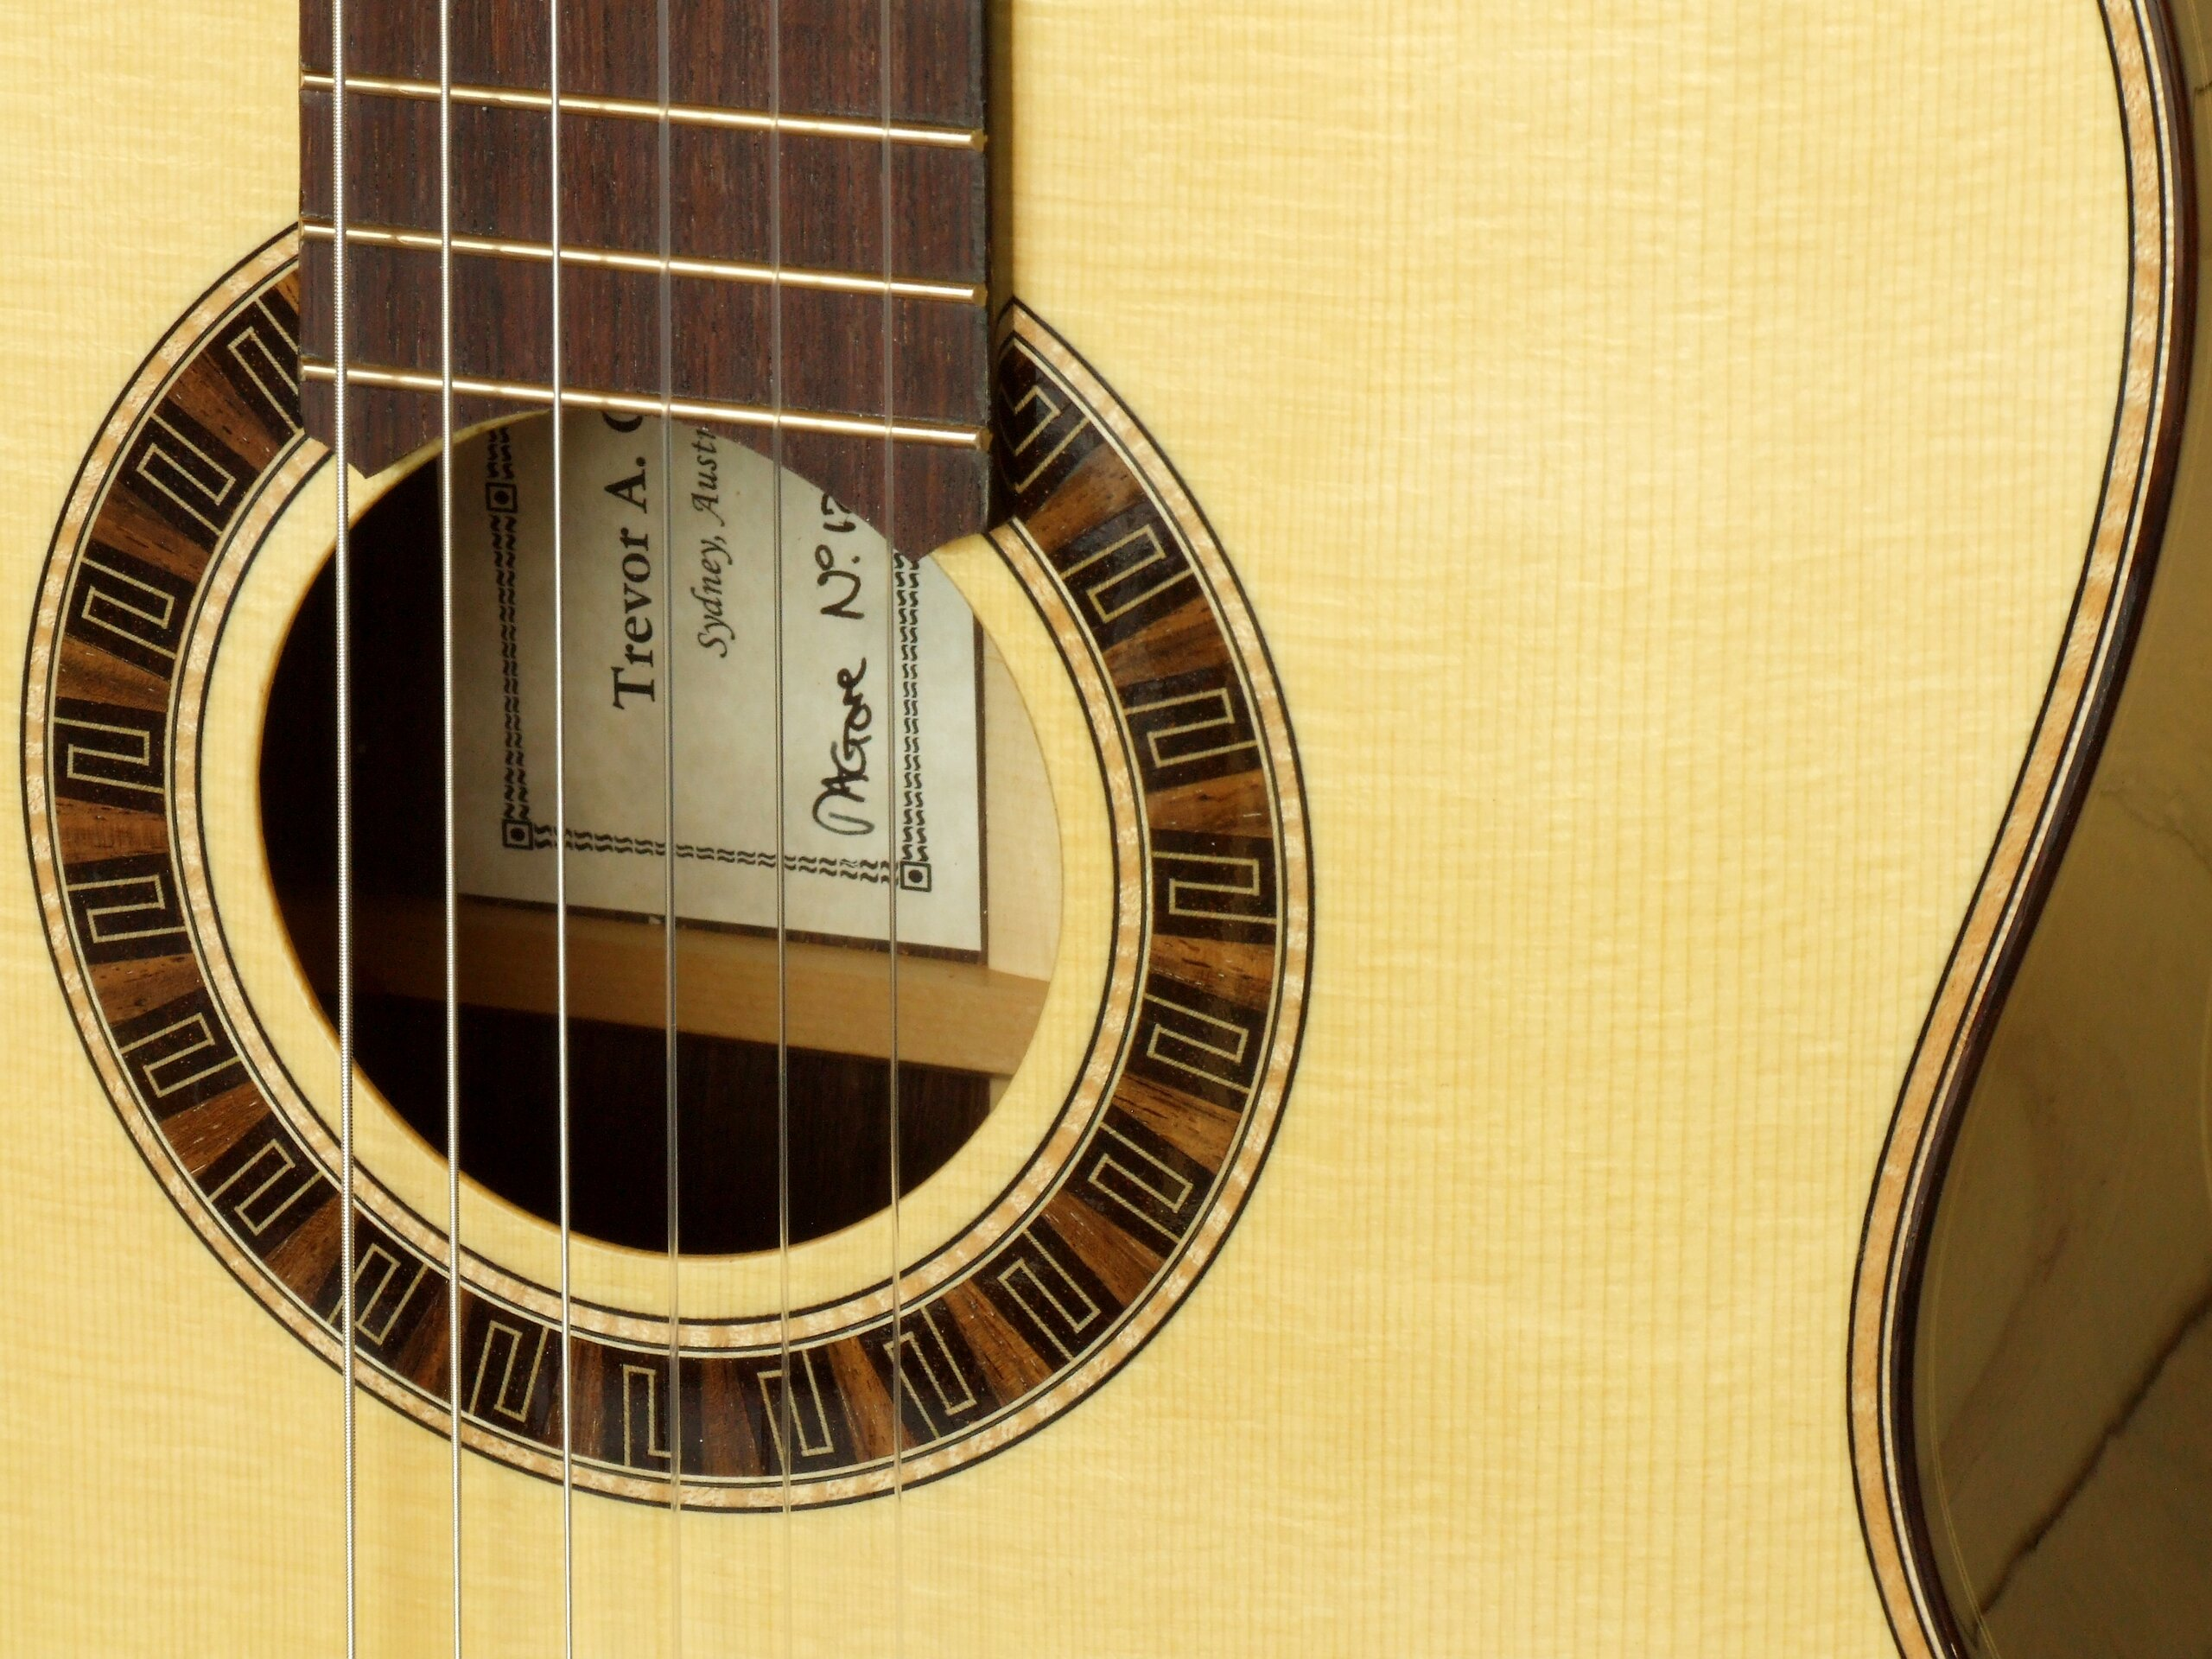 Meander rosette, figured maple purfling in a spruce topped Gore classical guitar